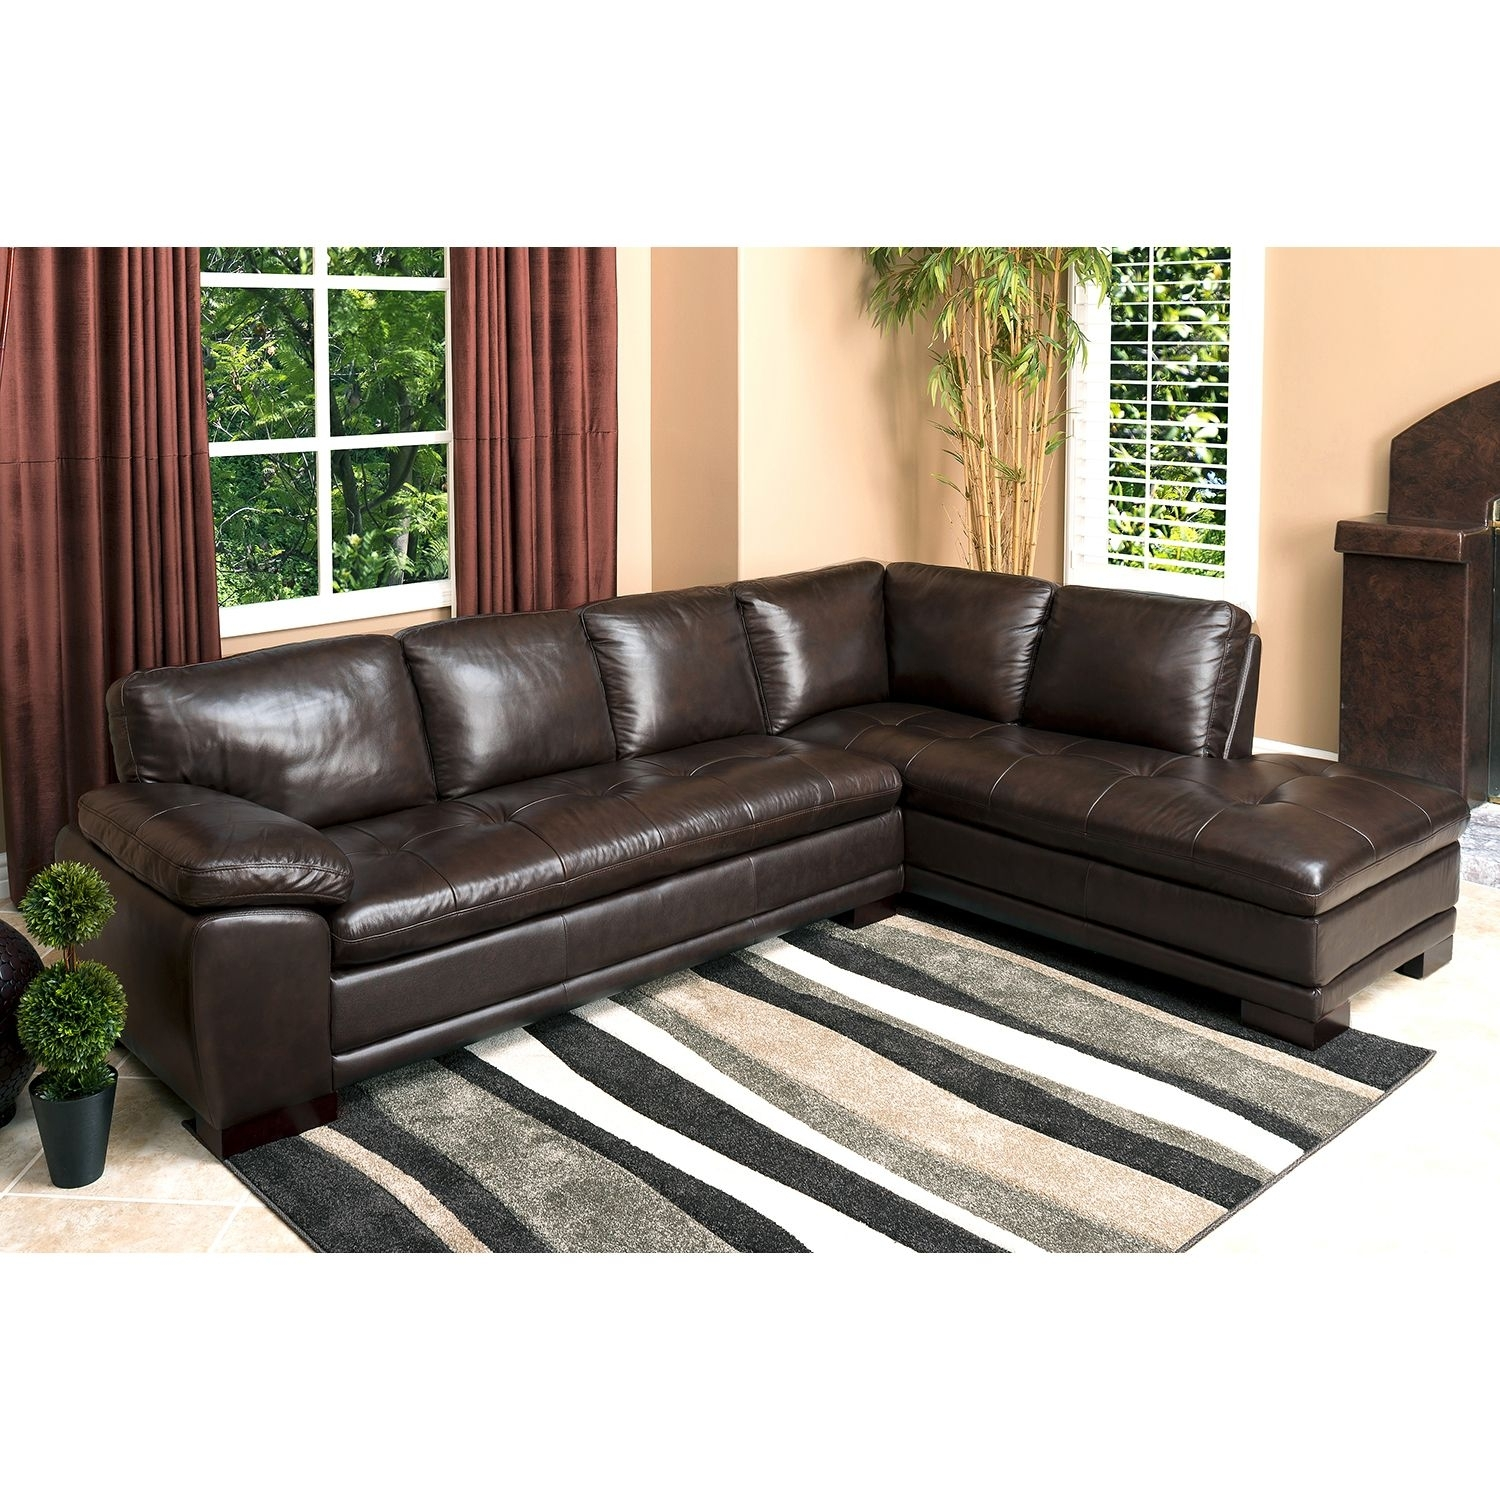 Westbury Top Grain Leather Sectional – Sam's Club | Sectionals In Sams Club Sectional Sofas (View 10 of 10)